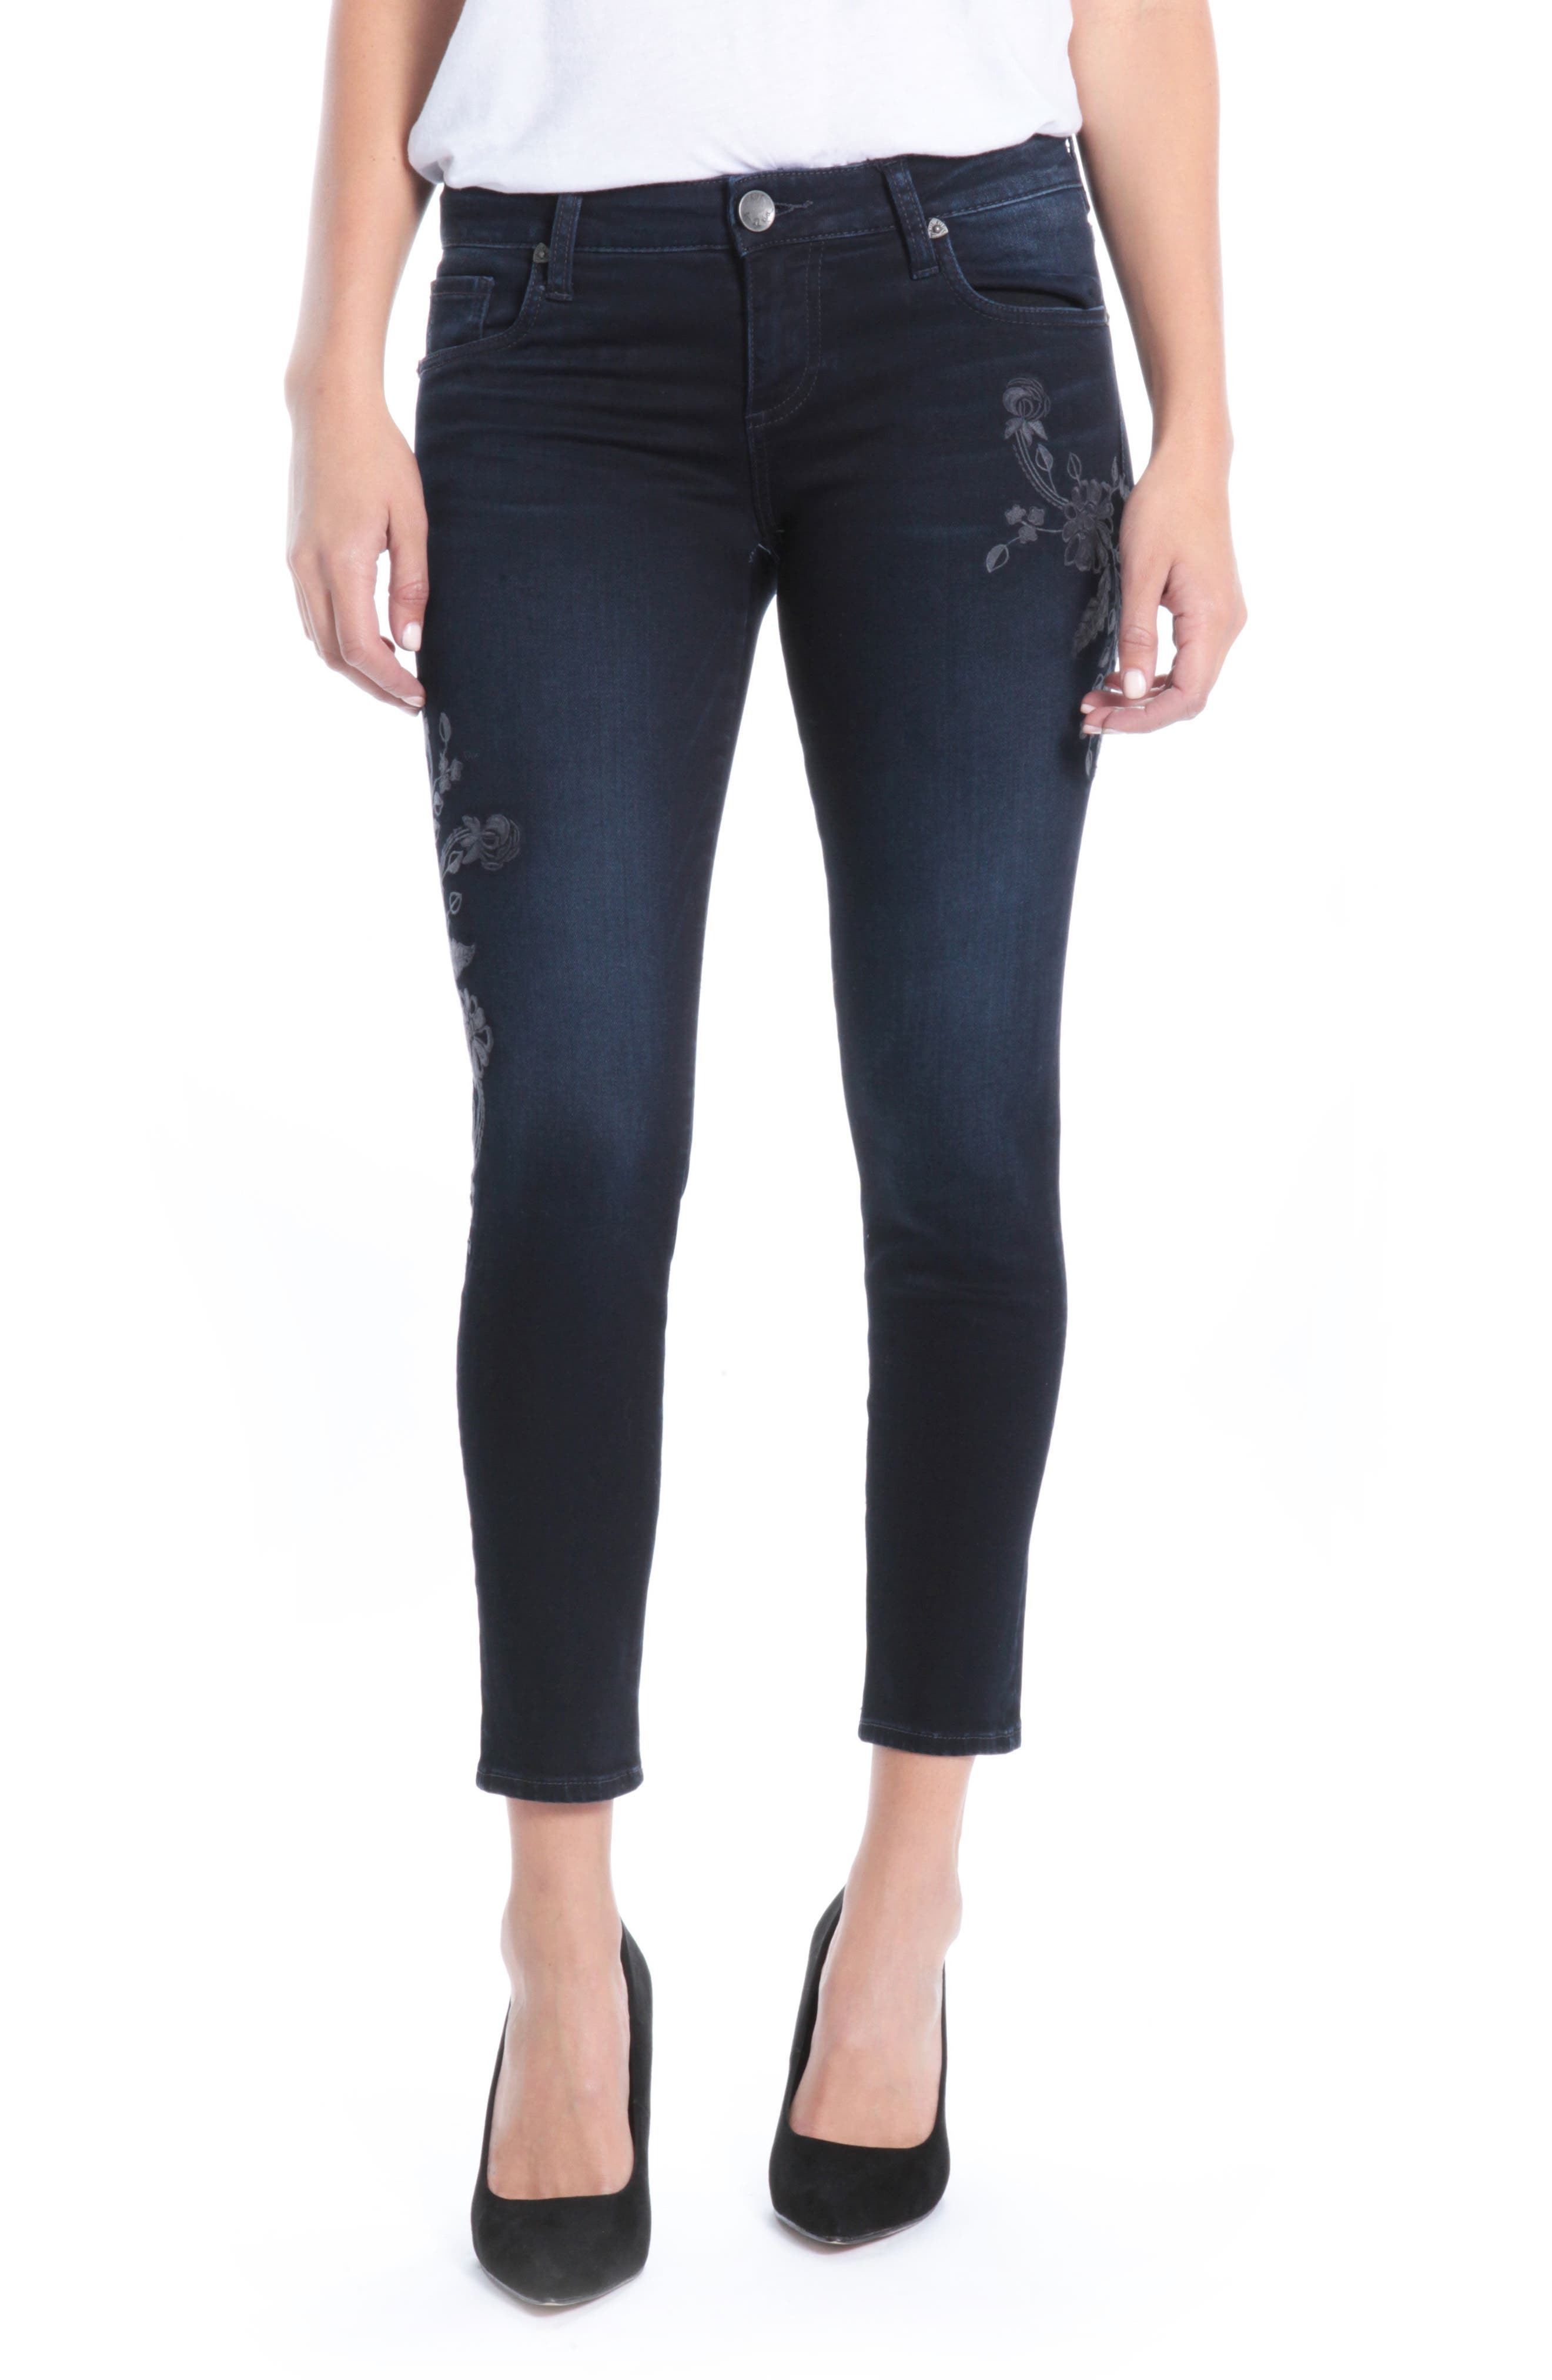 Kut from the Kloth Donna Ankle Skinny Jeans (Modeled)